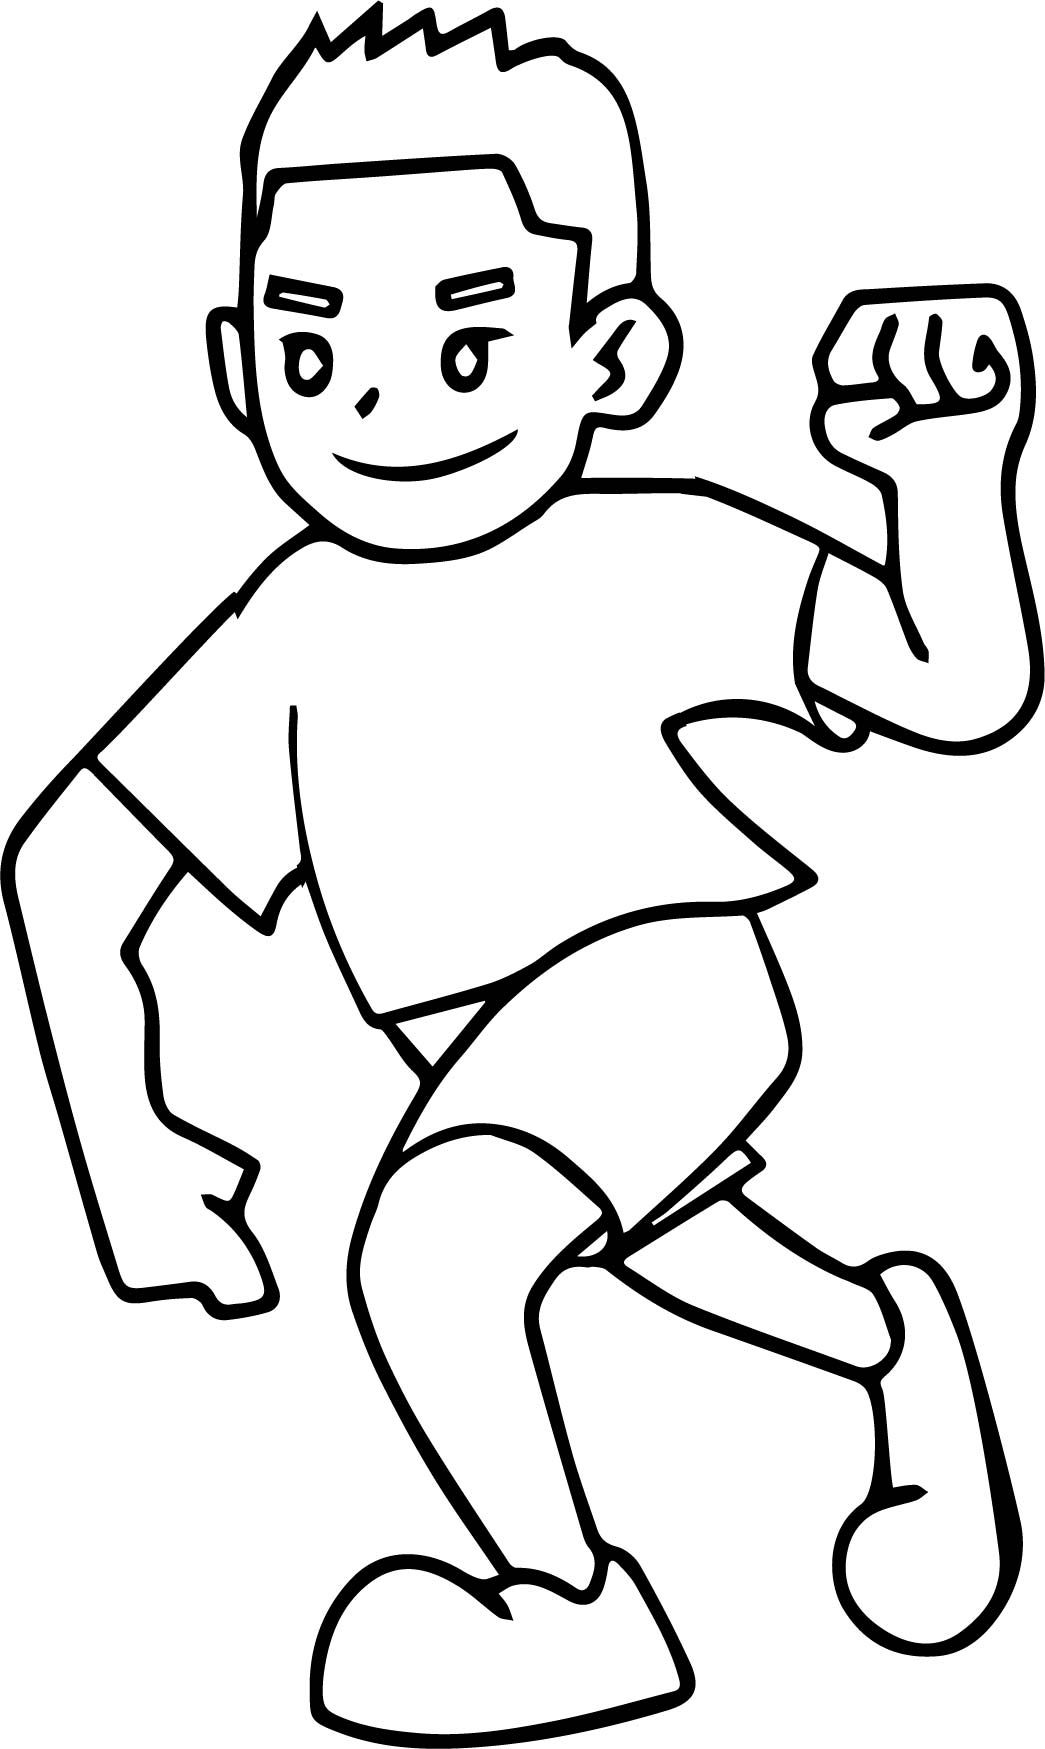 boy running coloring page happy boy running coloring page stock illustration coloring boy page running